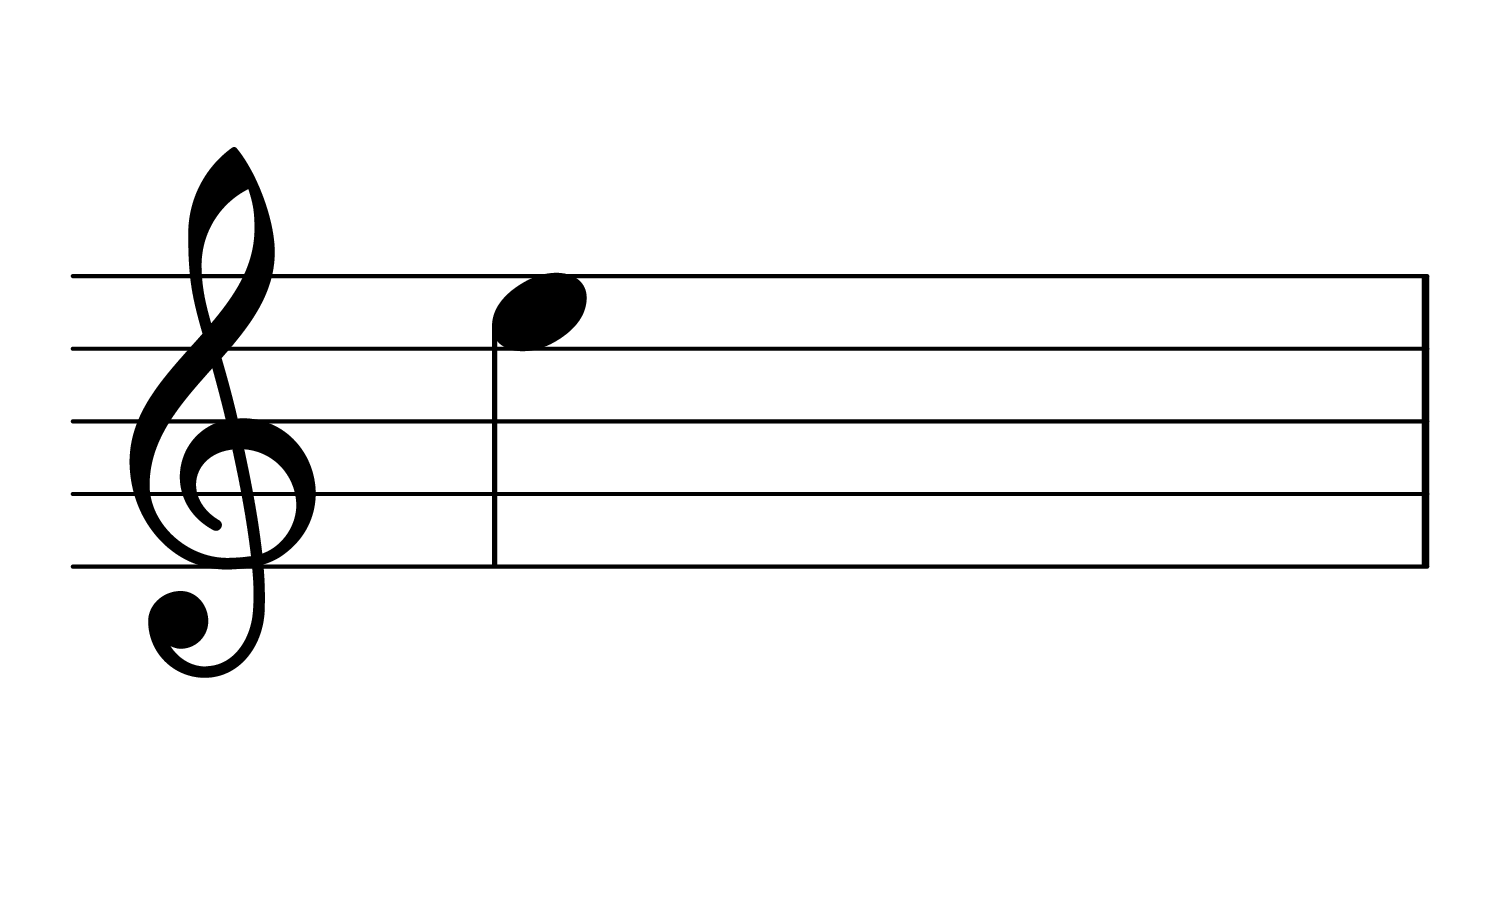 The note E3 on the treble clef.